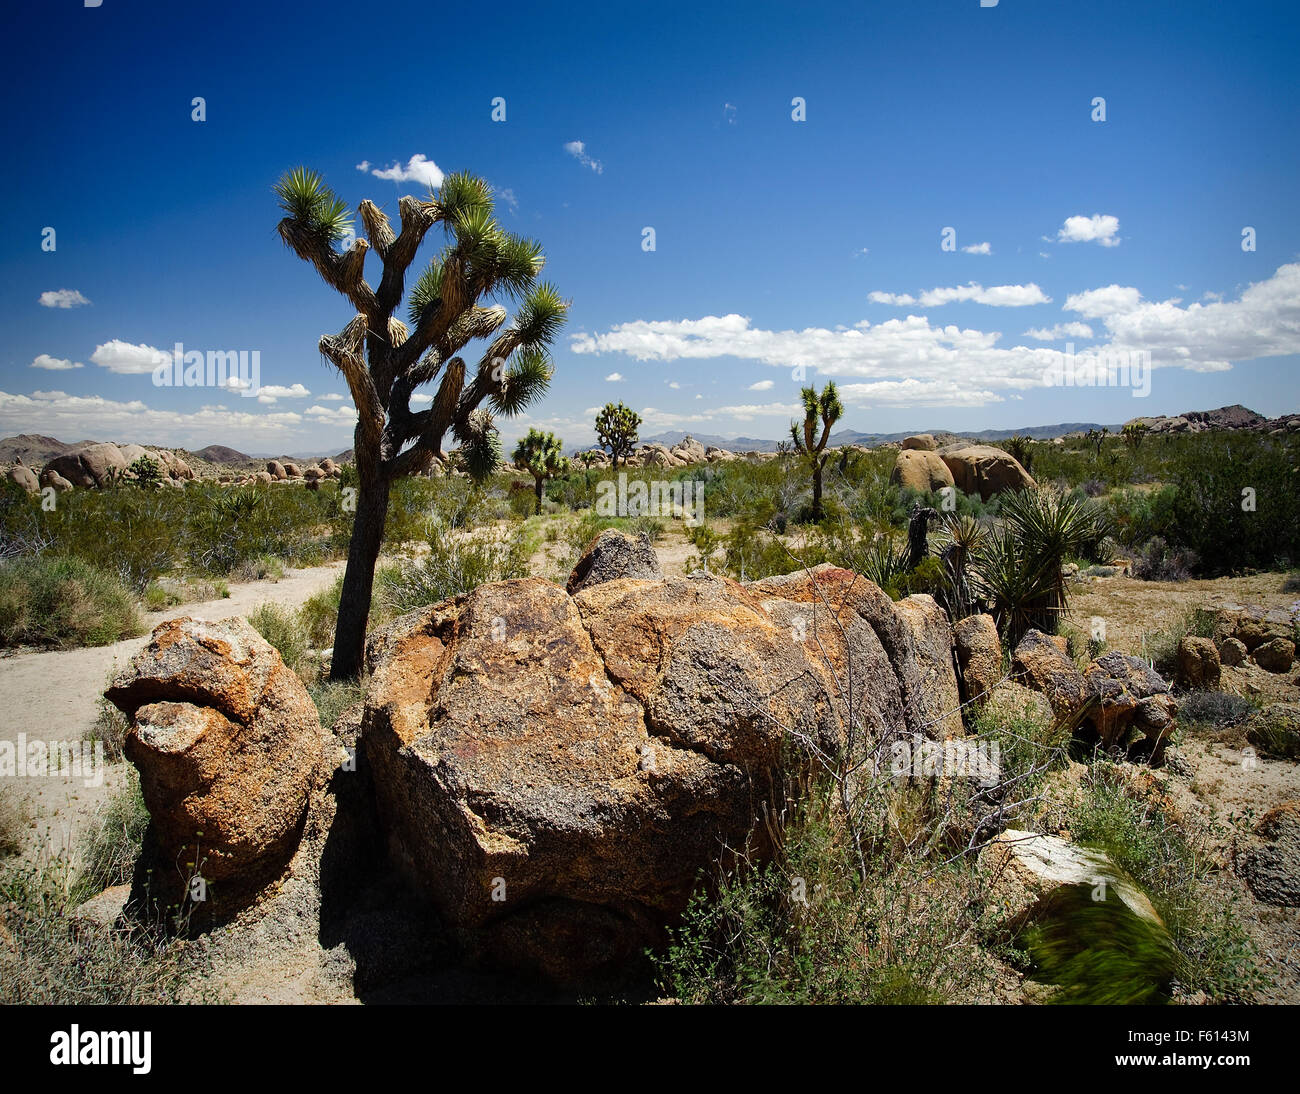 Joshua Tree in Joshua Tree National Park The Joshua tree is one of the most easily recognizable trees in the American - Stock Image